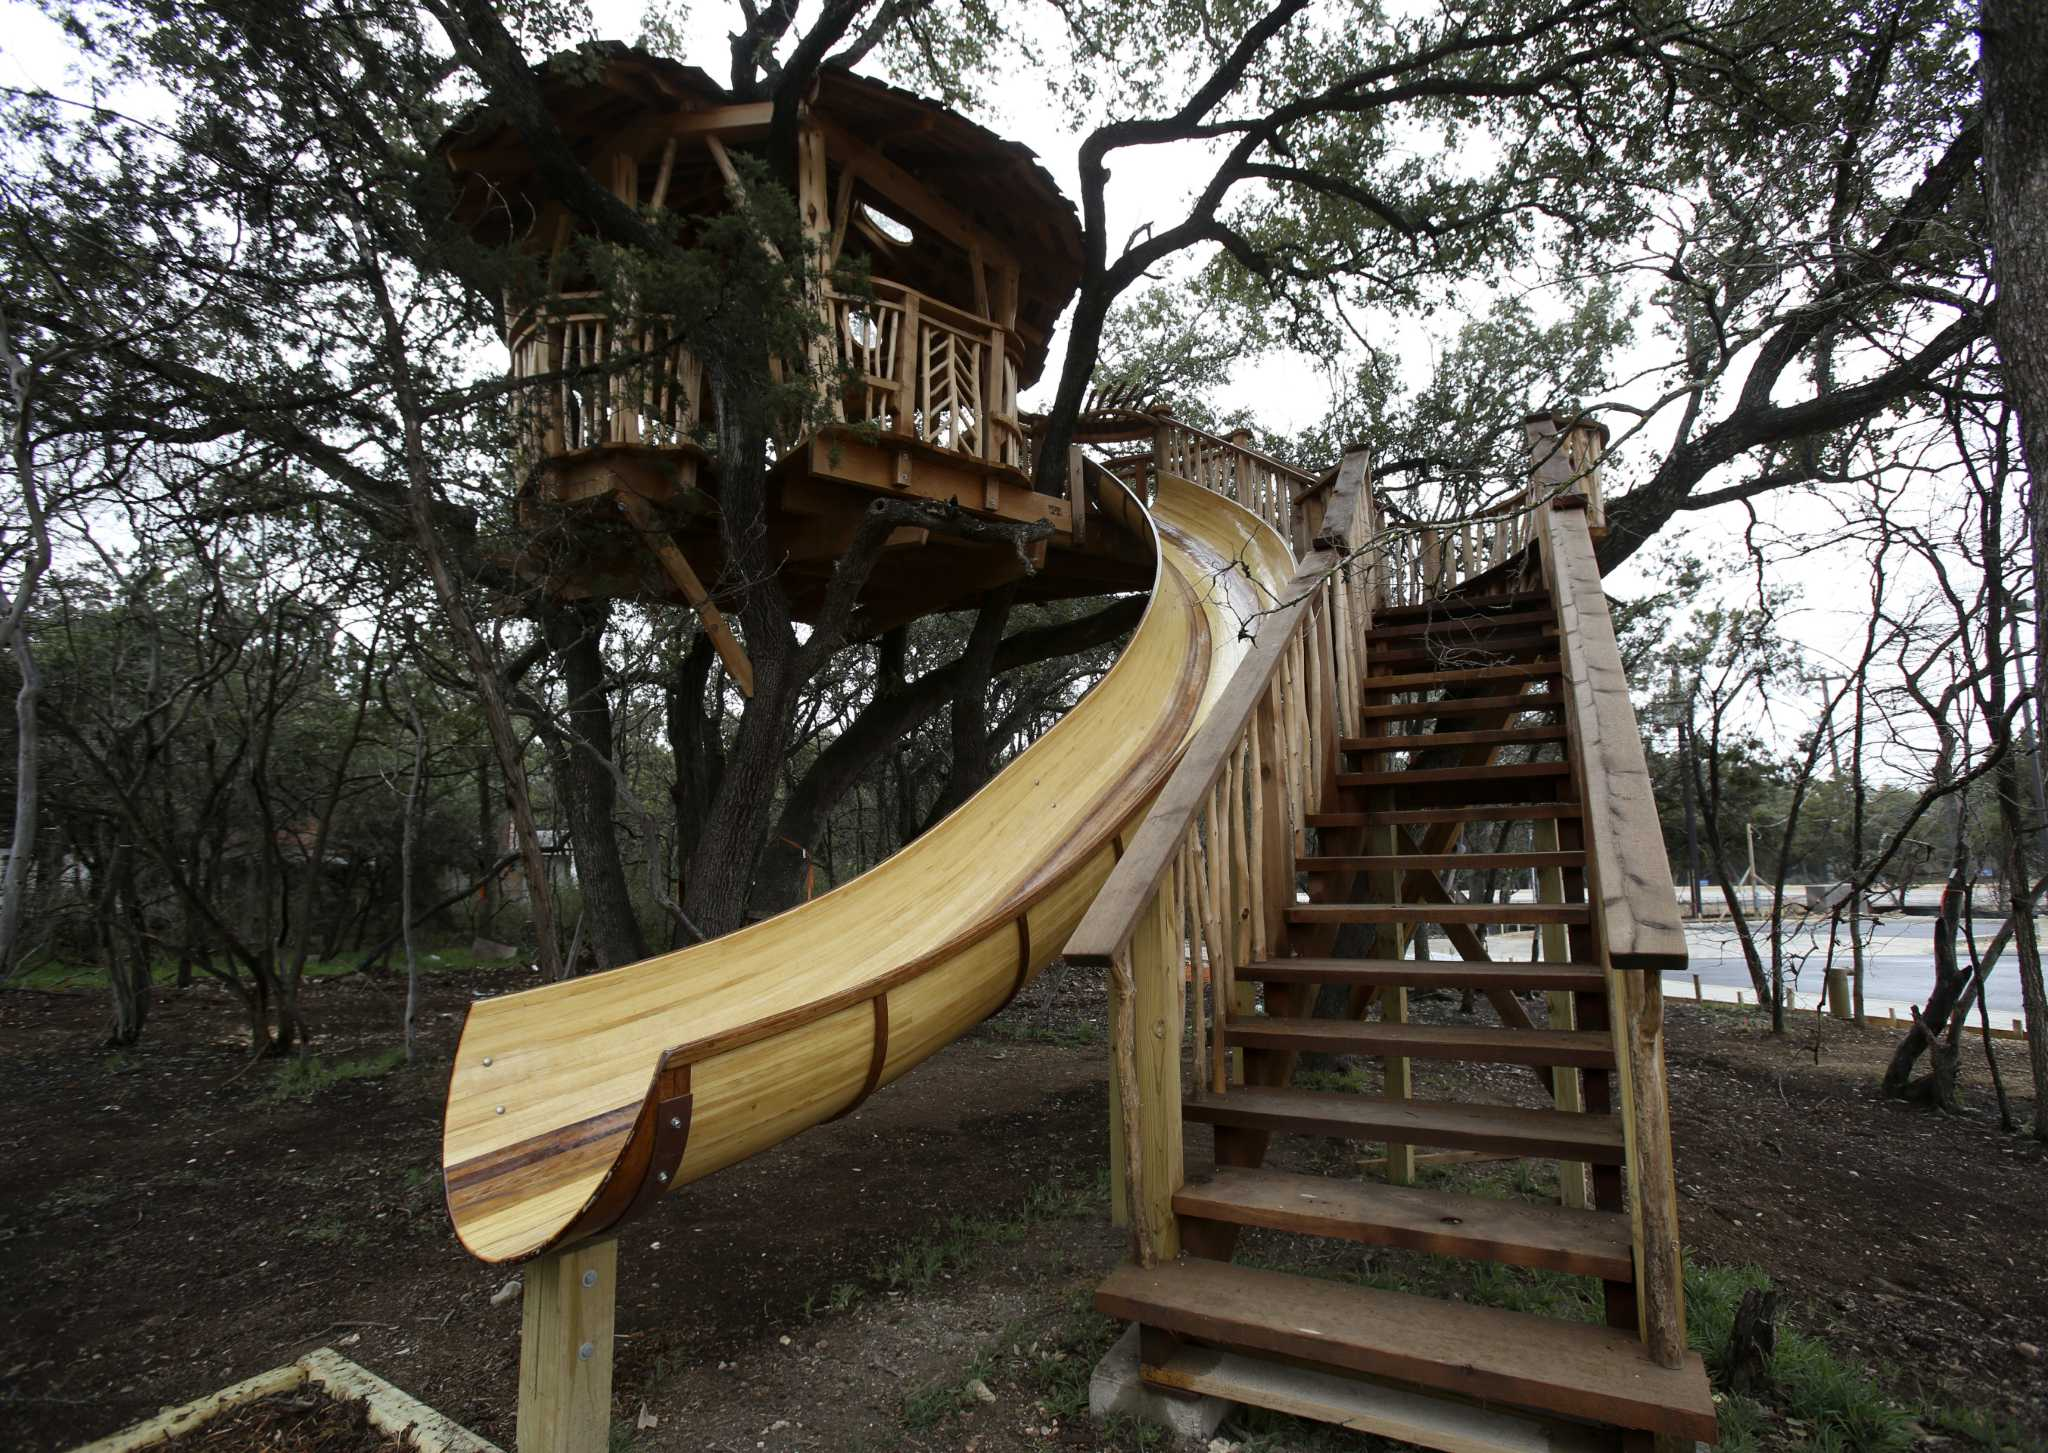 treehouse designs reach new heights san antonio express news. Black Bedroom Furniture Sets. Home Design Ideas